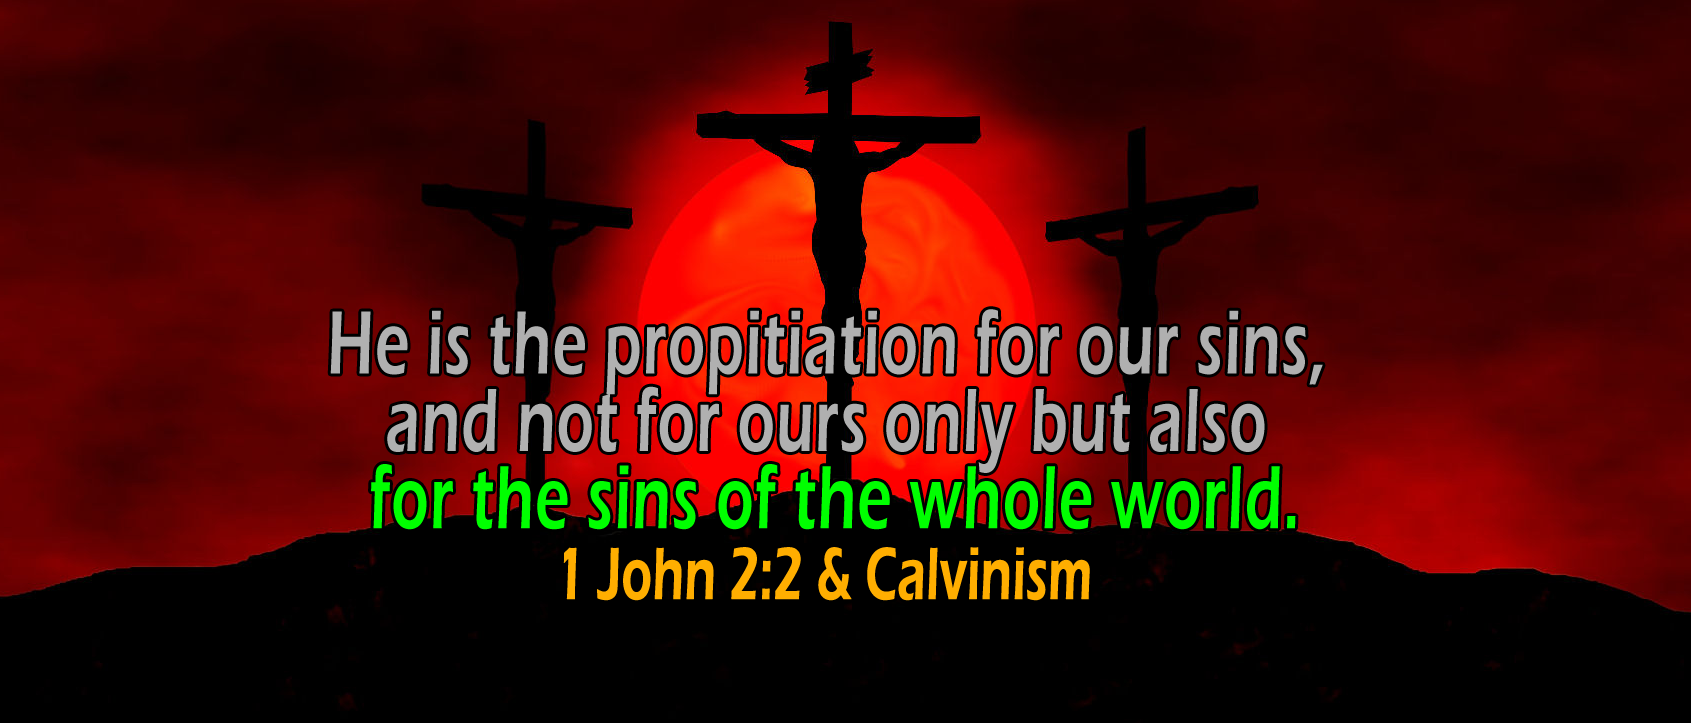 1 John 2:2, 'for the sins of the whole world'